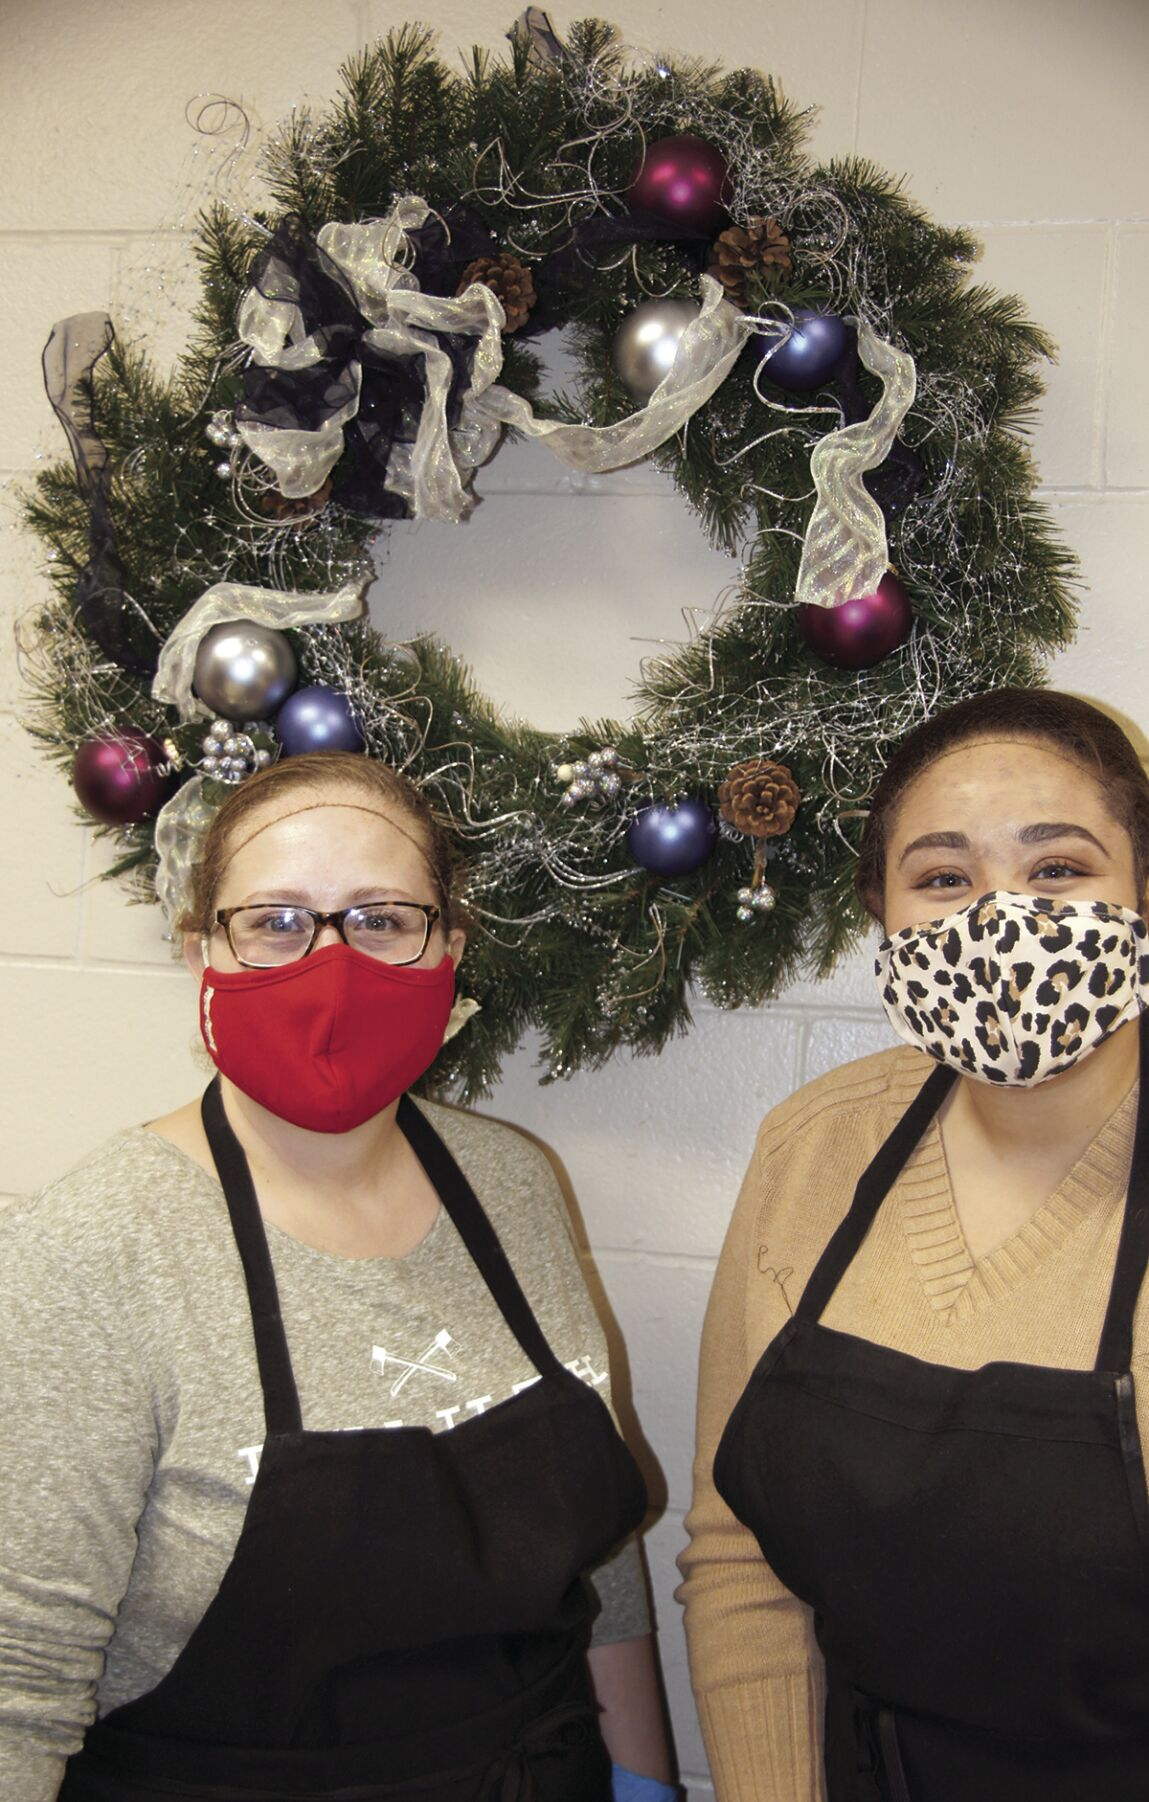 St. Louis Park residents volunteer at Union Gospel Mission Christmas Day - 2